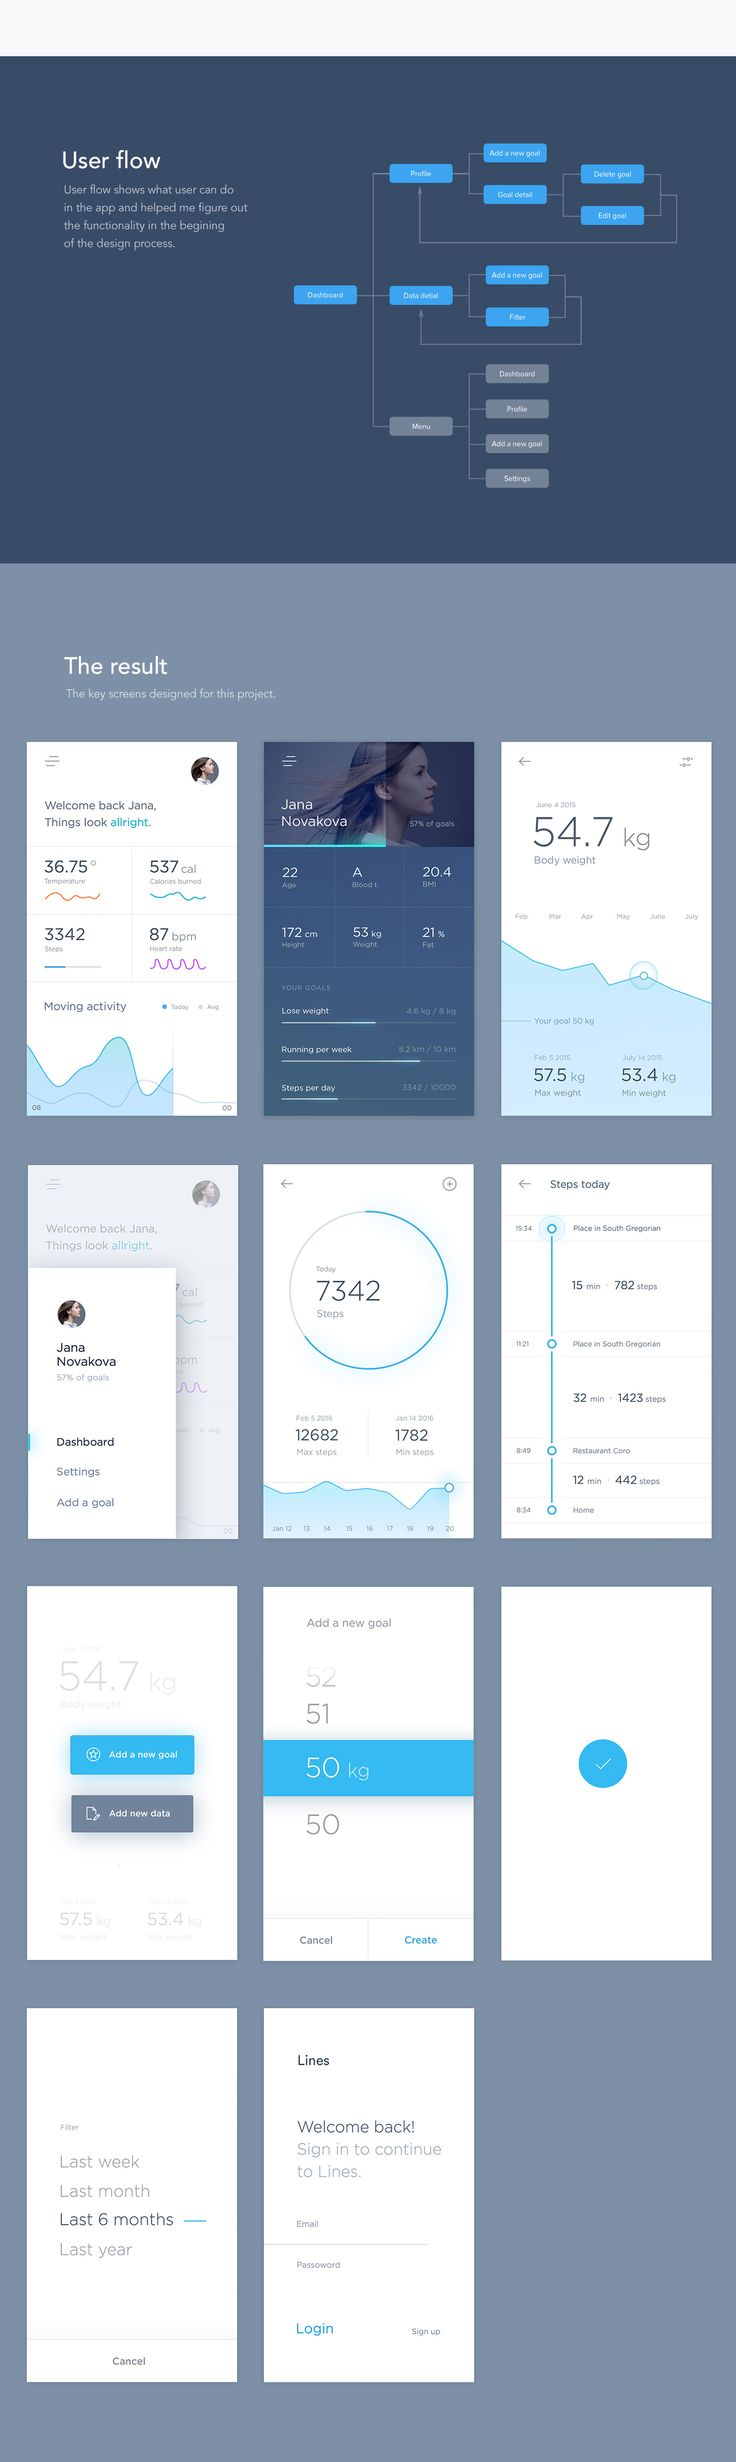 lines activity tracker app design - Ui Design Ideas